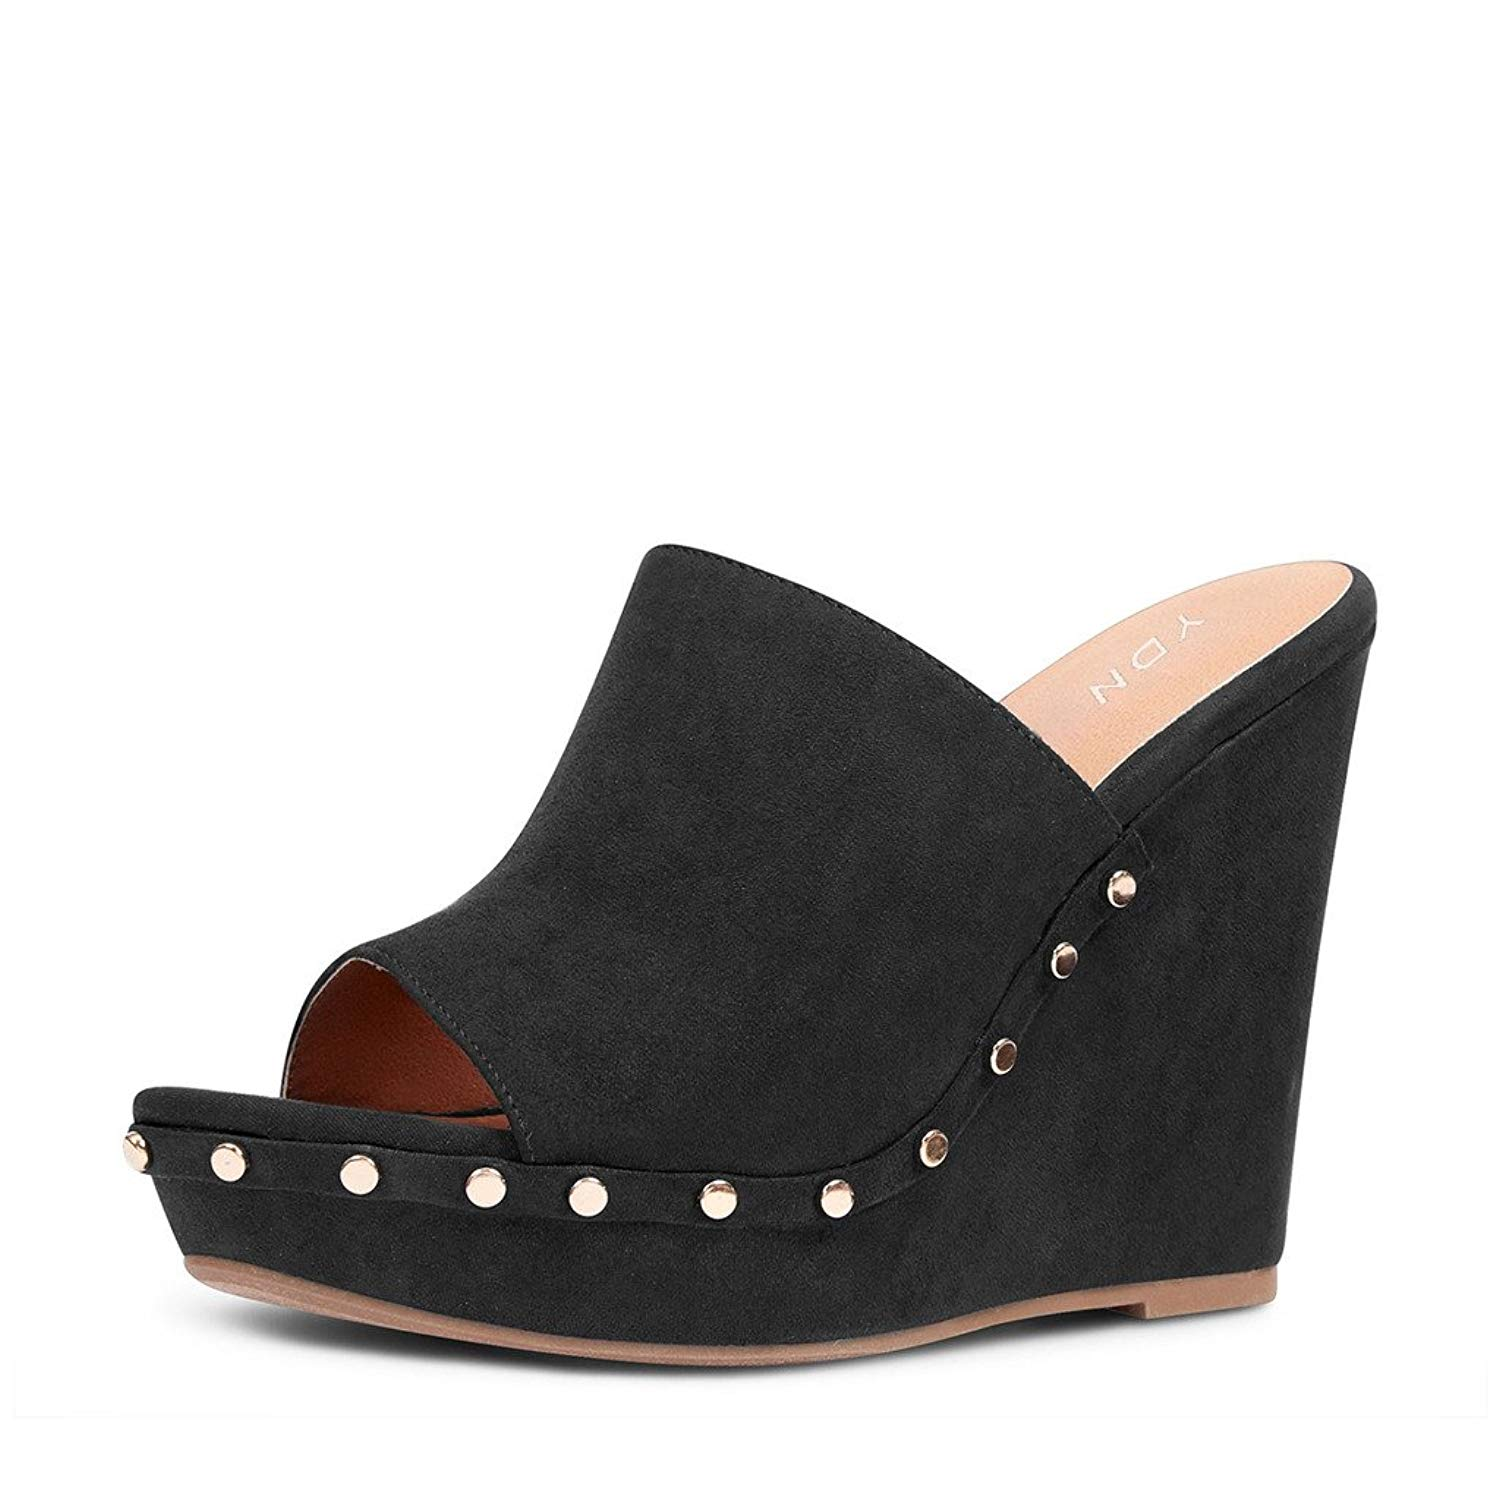 191ac52b569 Get Quotations · YDN Women Studded High Heel Wedge Sandals Open Toe Platform  Clogs Mules Slide Shoes